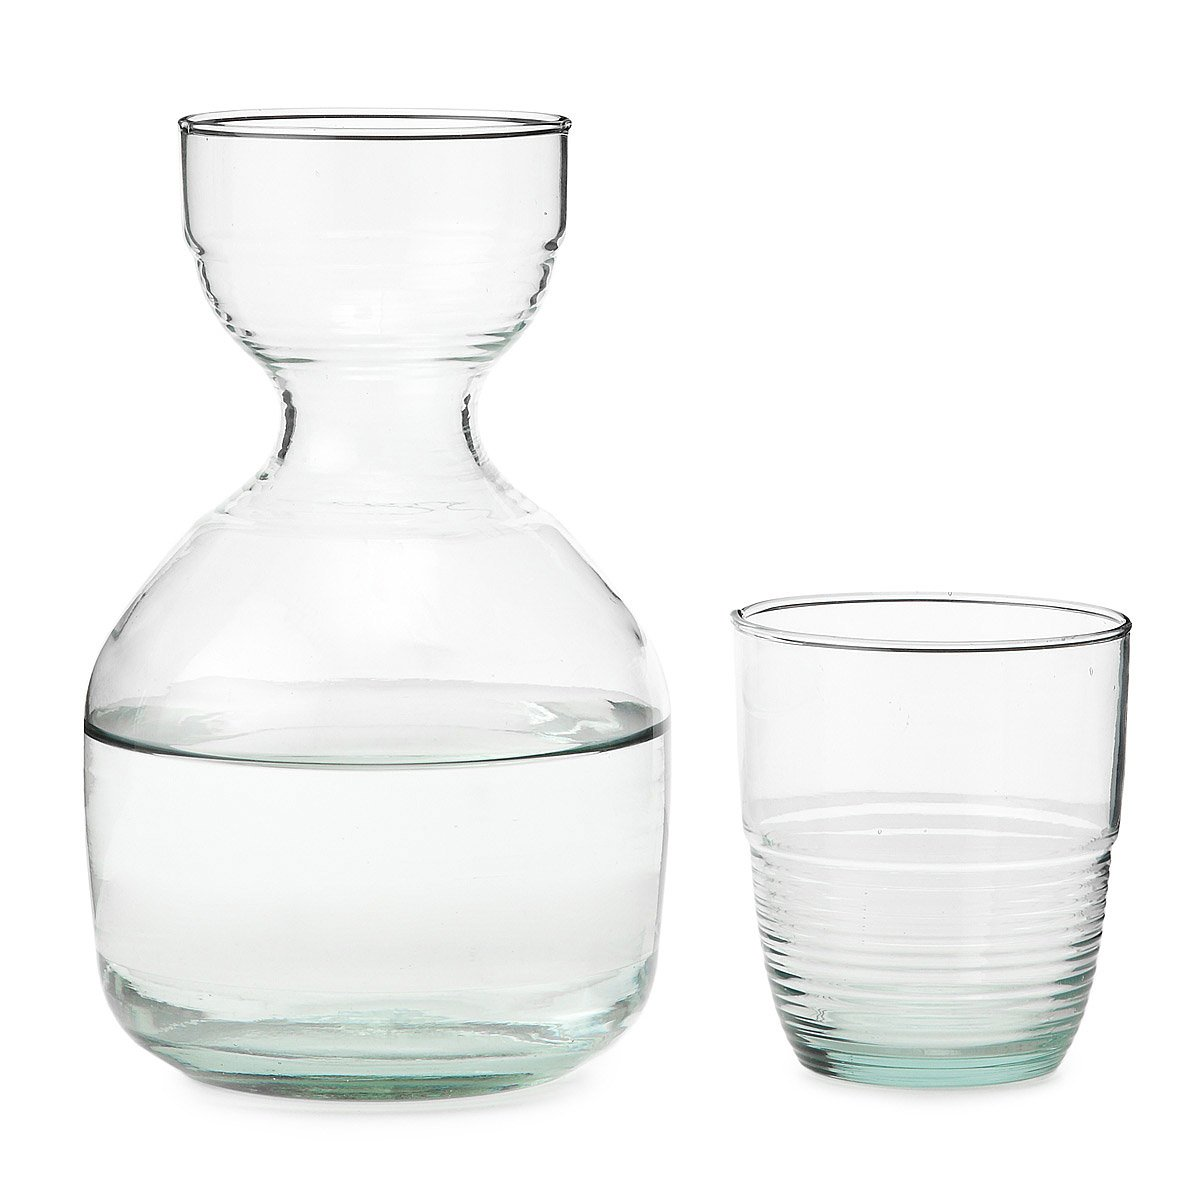 Recycled Carafe And Glass 2 Thumbnail